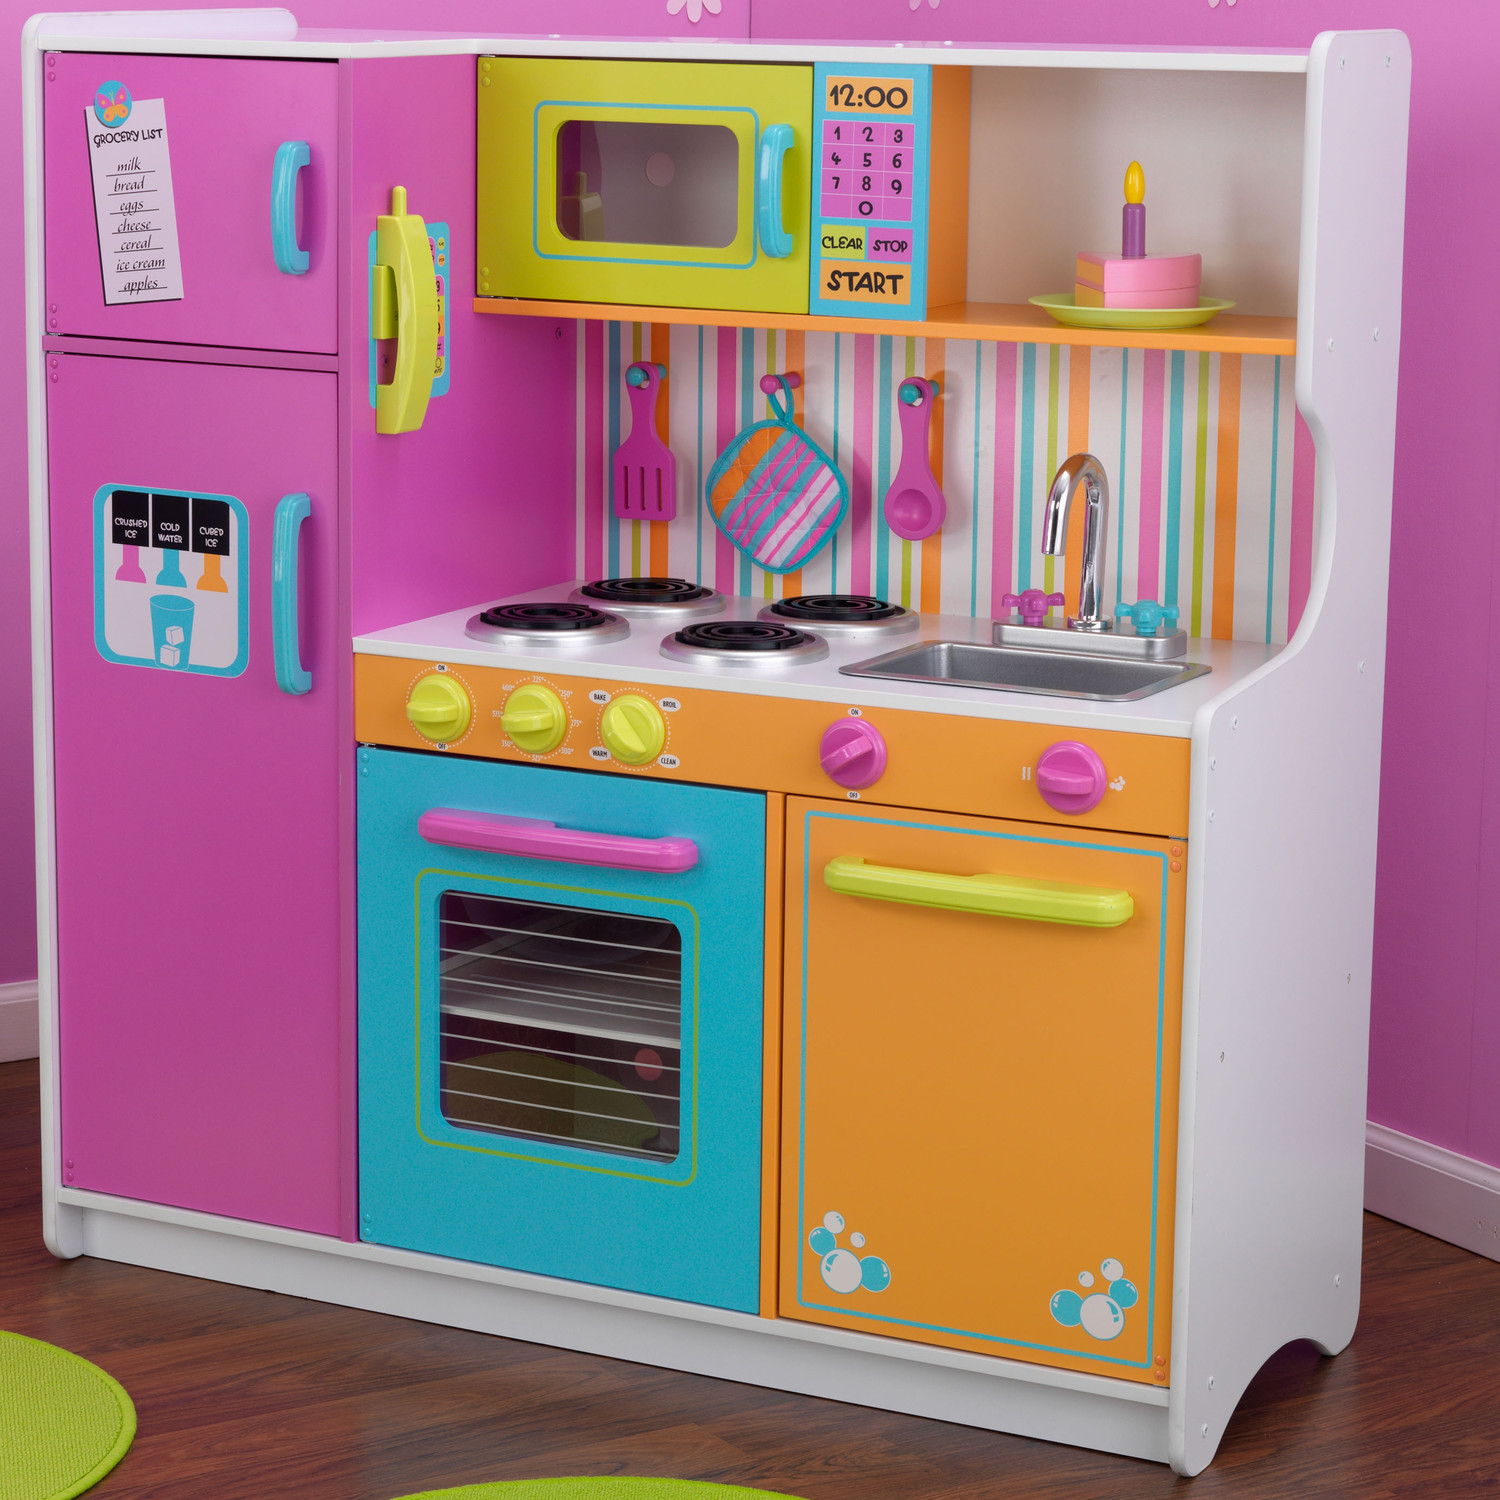 Children Kitchen Set: Indigo Canada Toy Sale: Save 59% Off KidKraft Deluxe